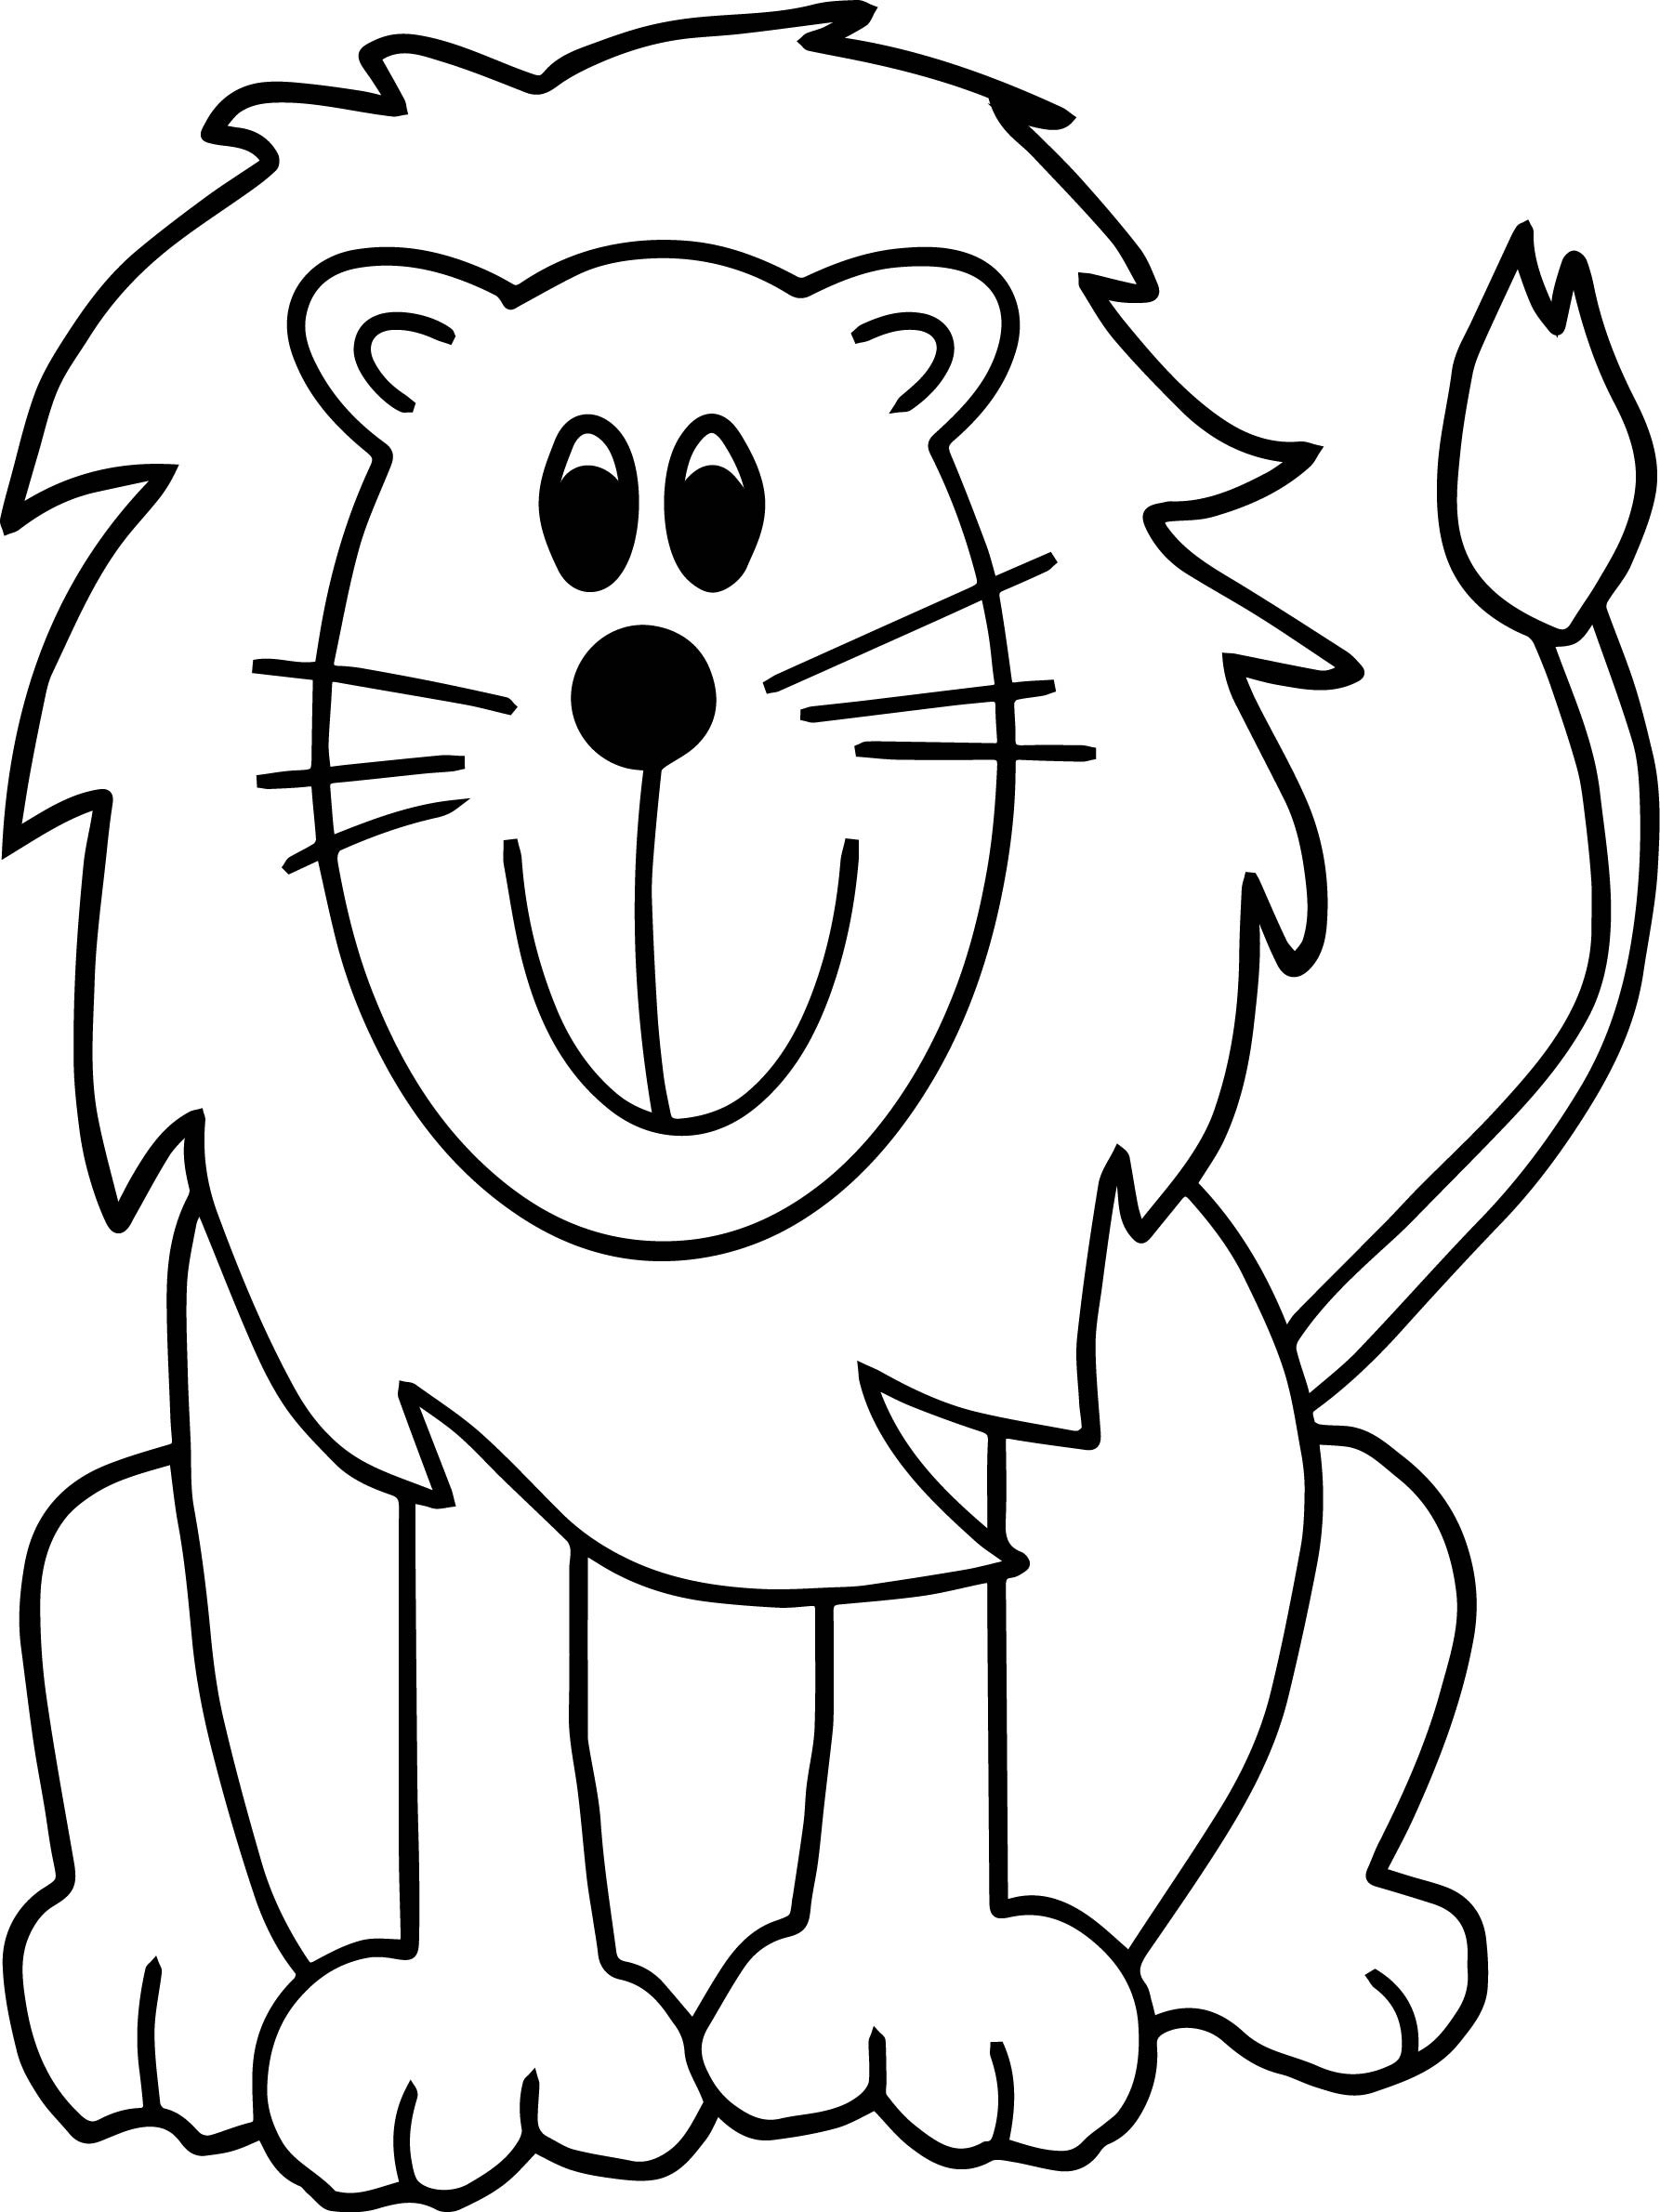 zoo coloring sheets 35 zoo coloring pages coloringstar zoo coloring sheets